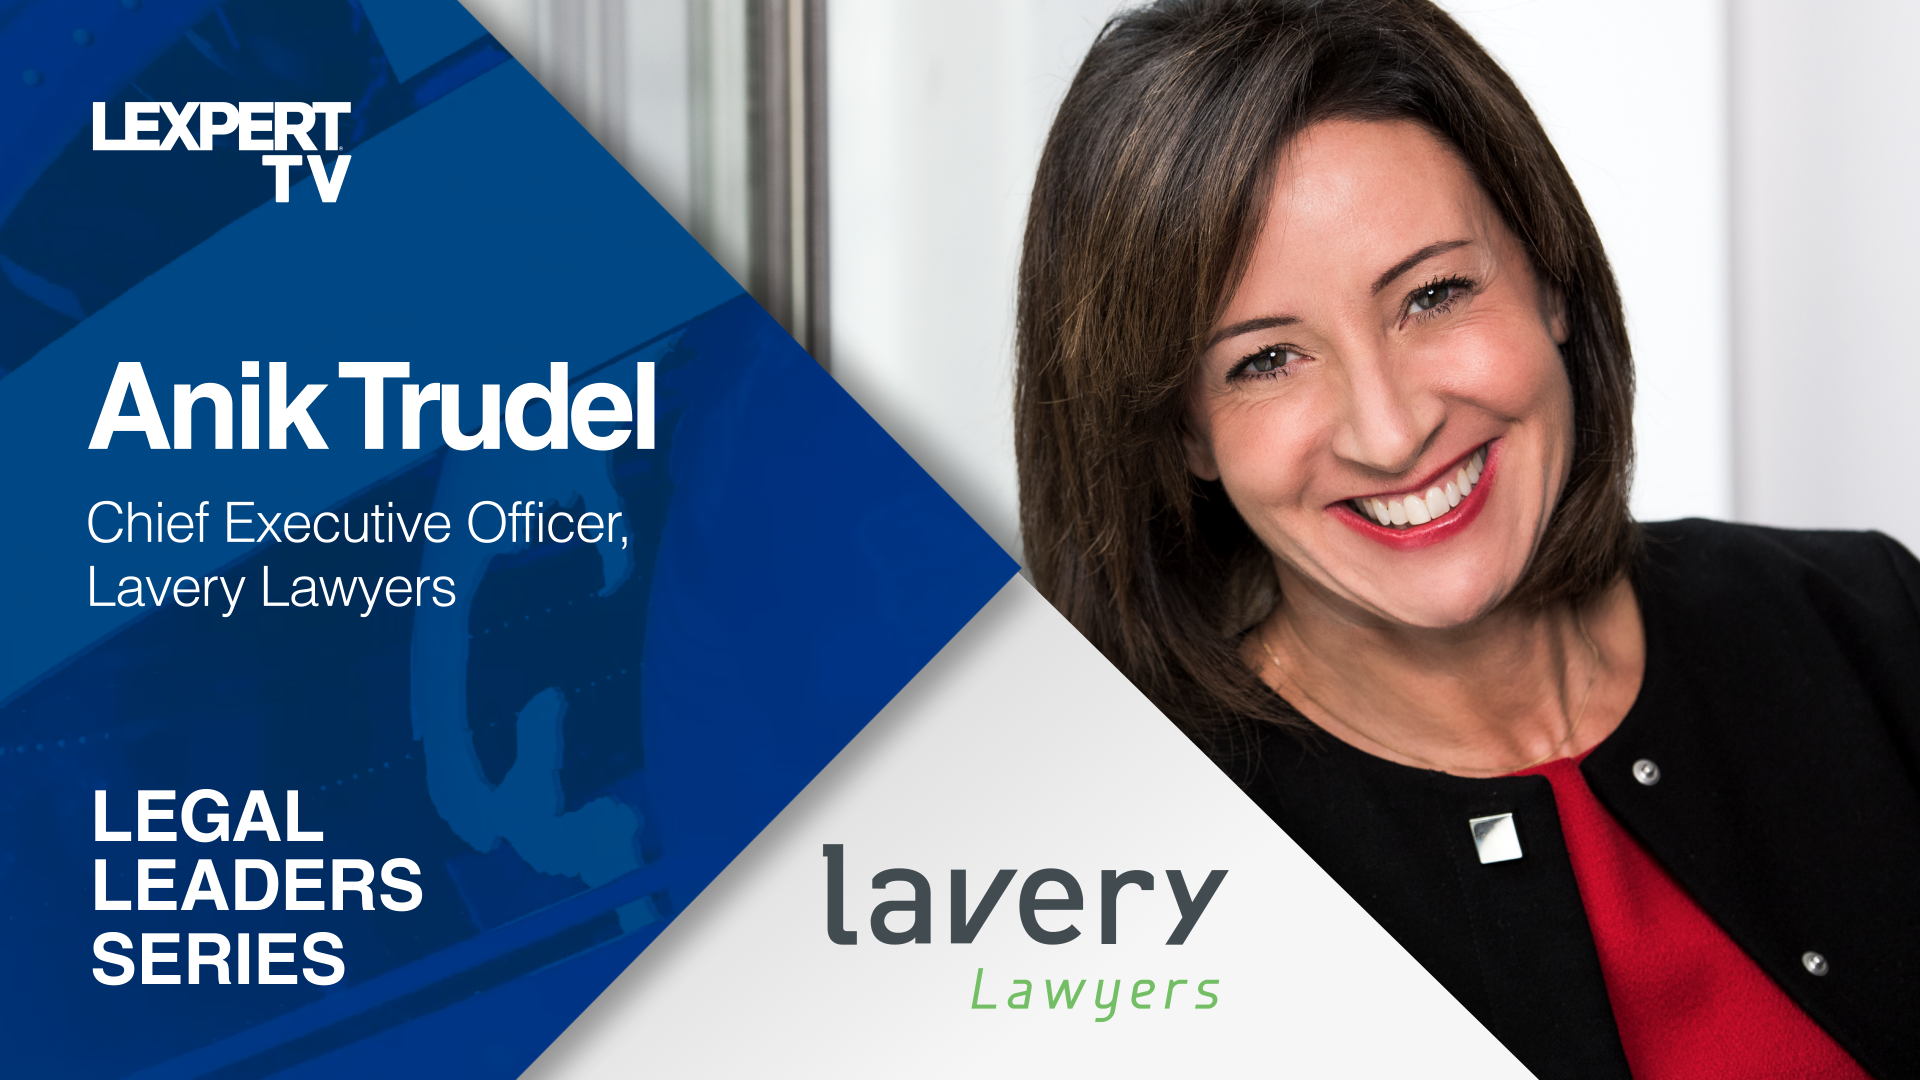 Anik Trudel, Lavery, on her firm's future growth